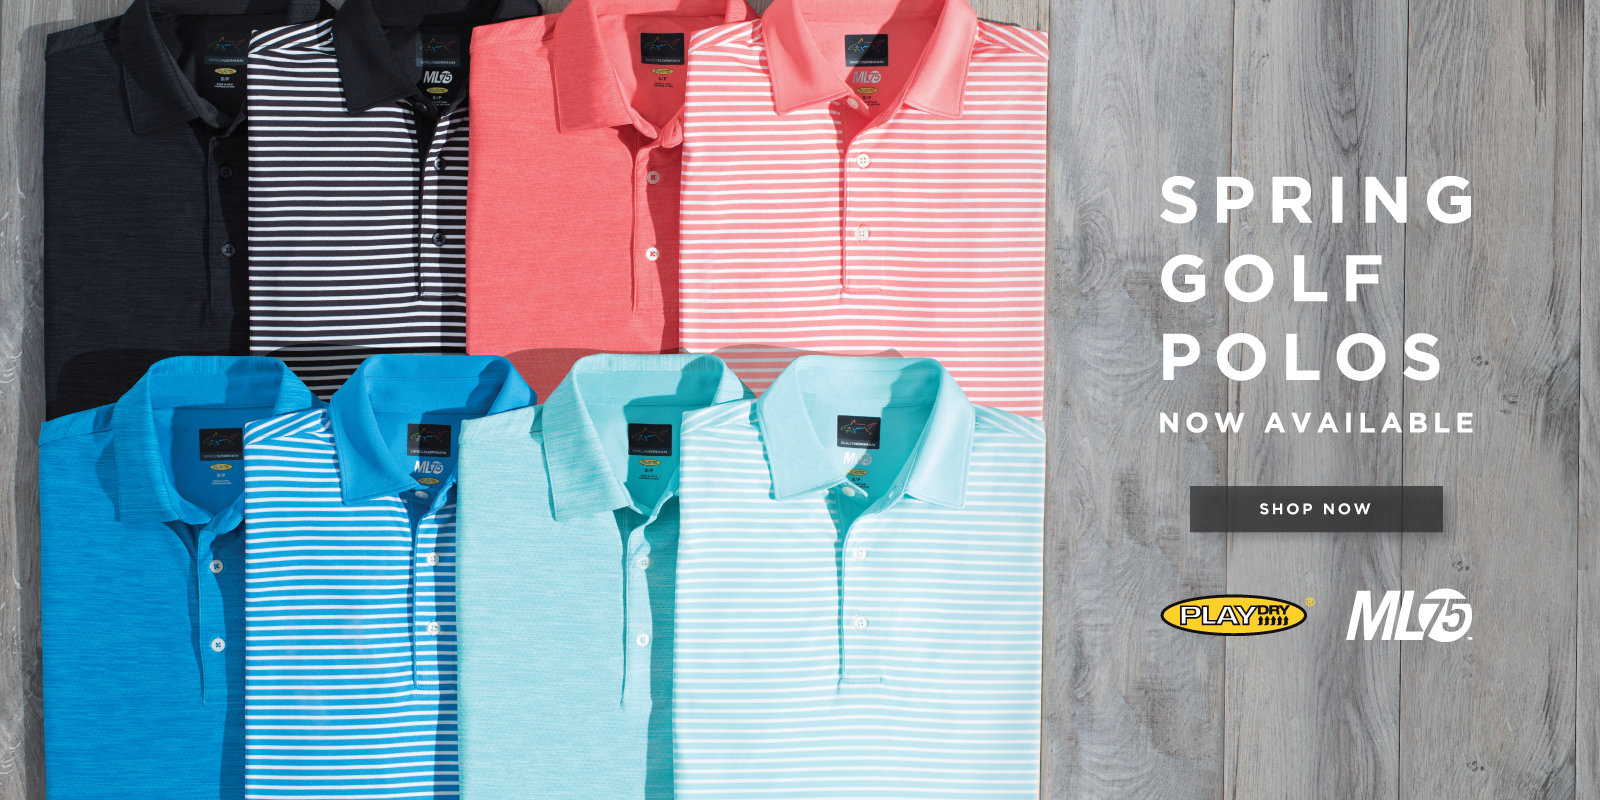 Spring golf polos now available shop now